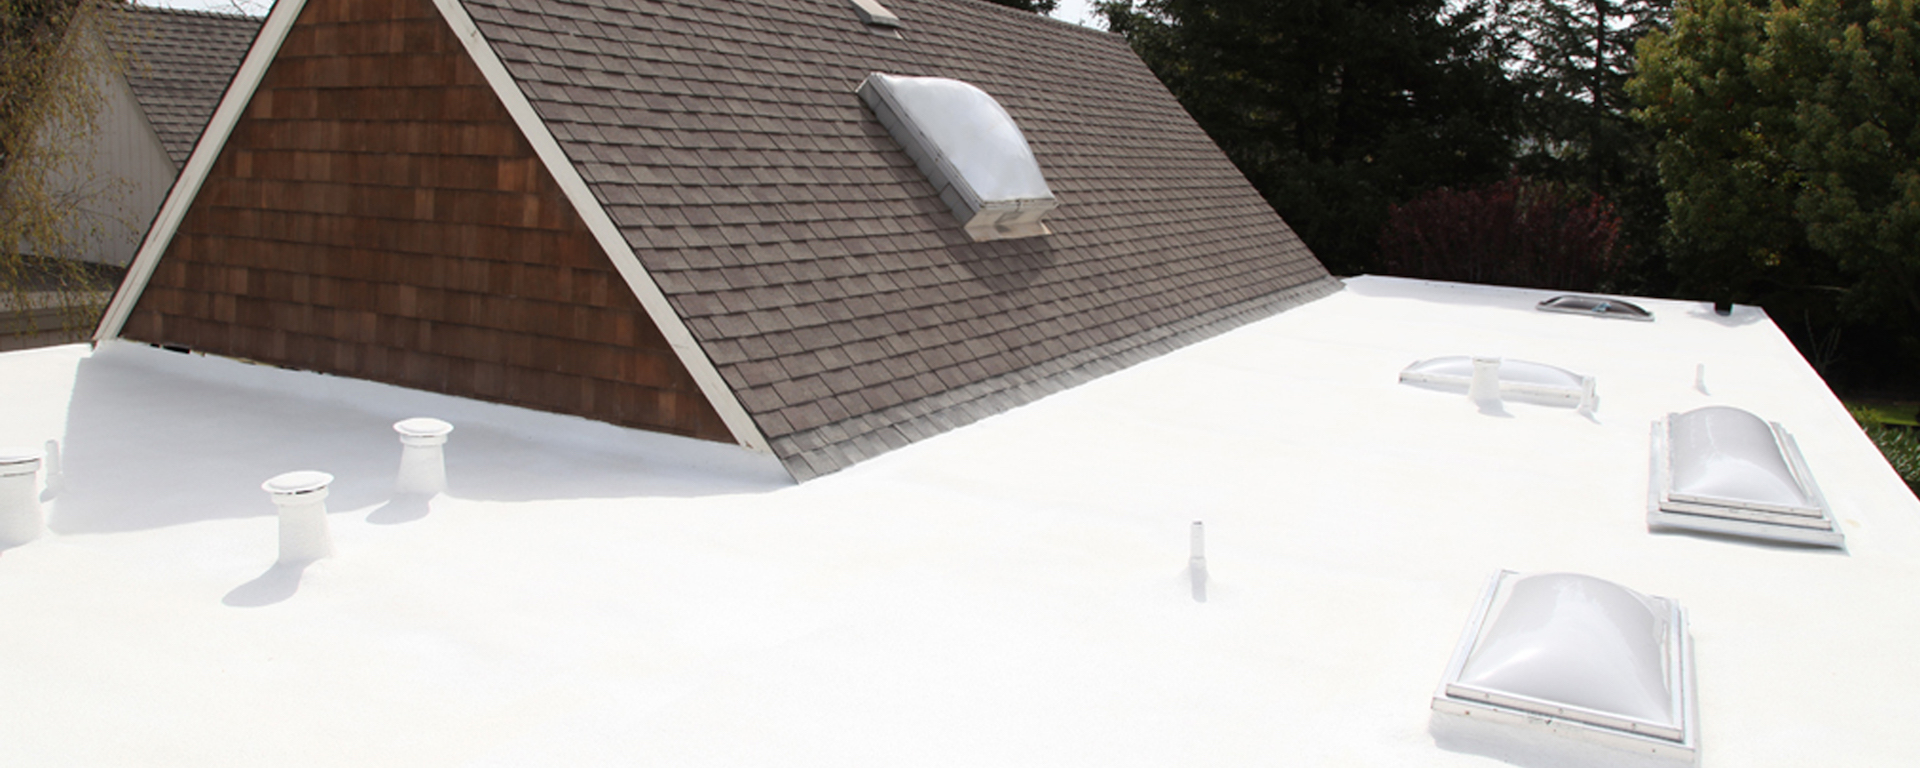 common-flat-roof-repairs